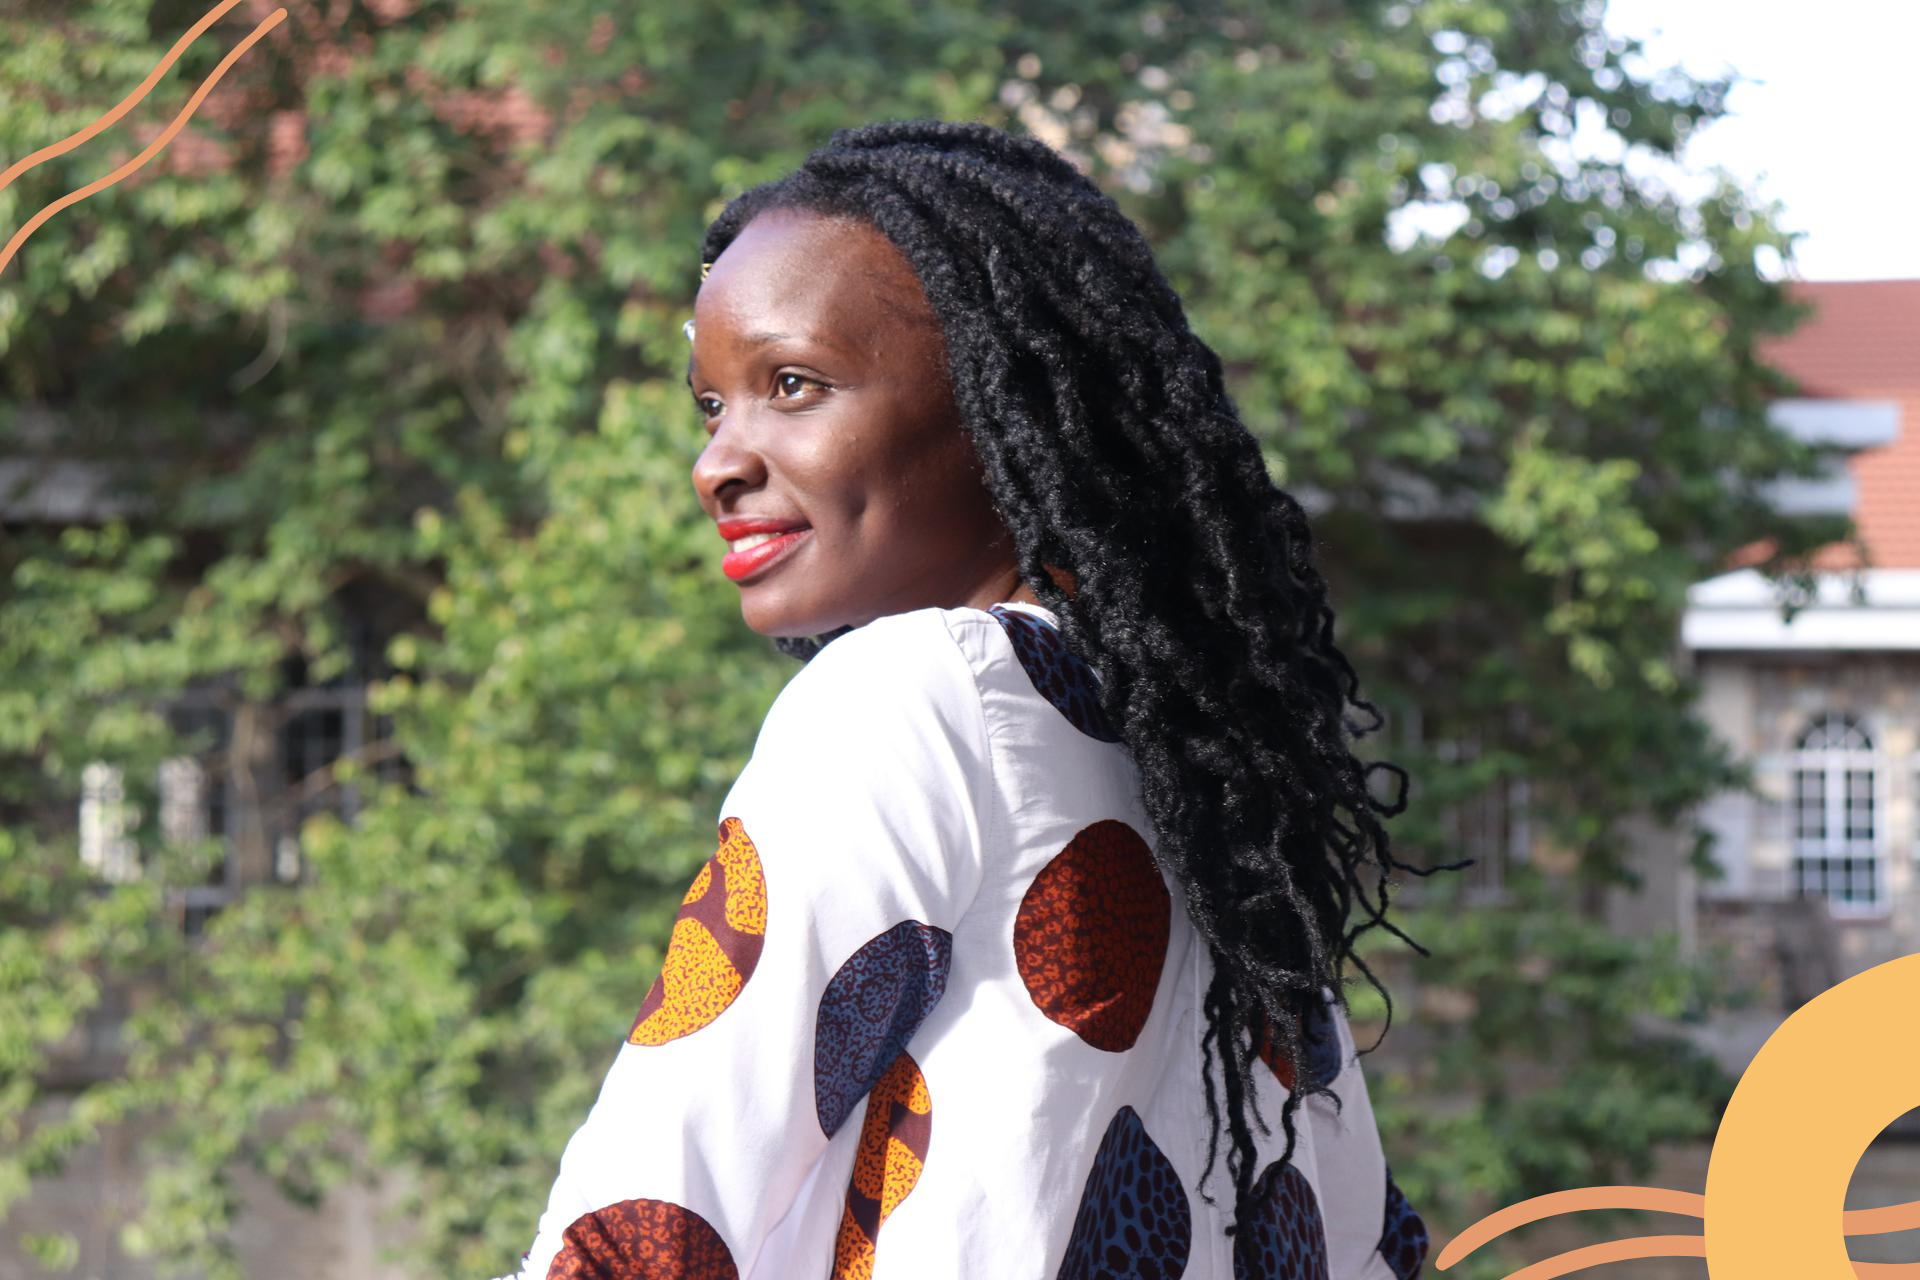 Image of a black woman wearing red lipstick, she smiles off camera and the sun hits her face.